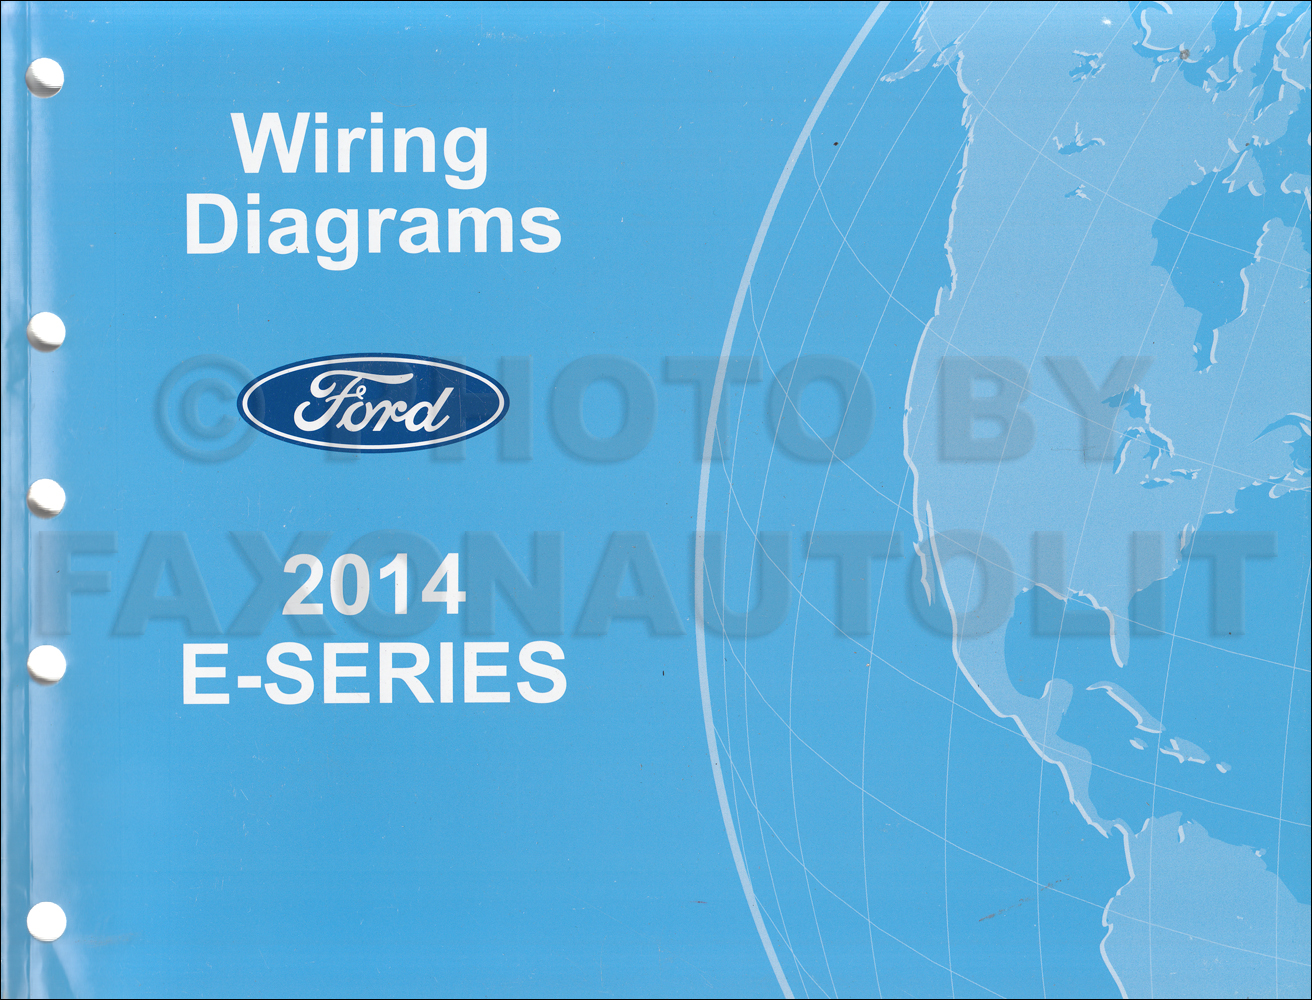 Ford E450 Wiring Archive Of Automotive Diagram 05 Hyundai Tiburon 2014 Econoline Manual Original Van E150 E250 Rh Faxonautoliterature Com 2005